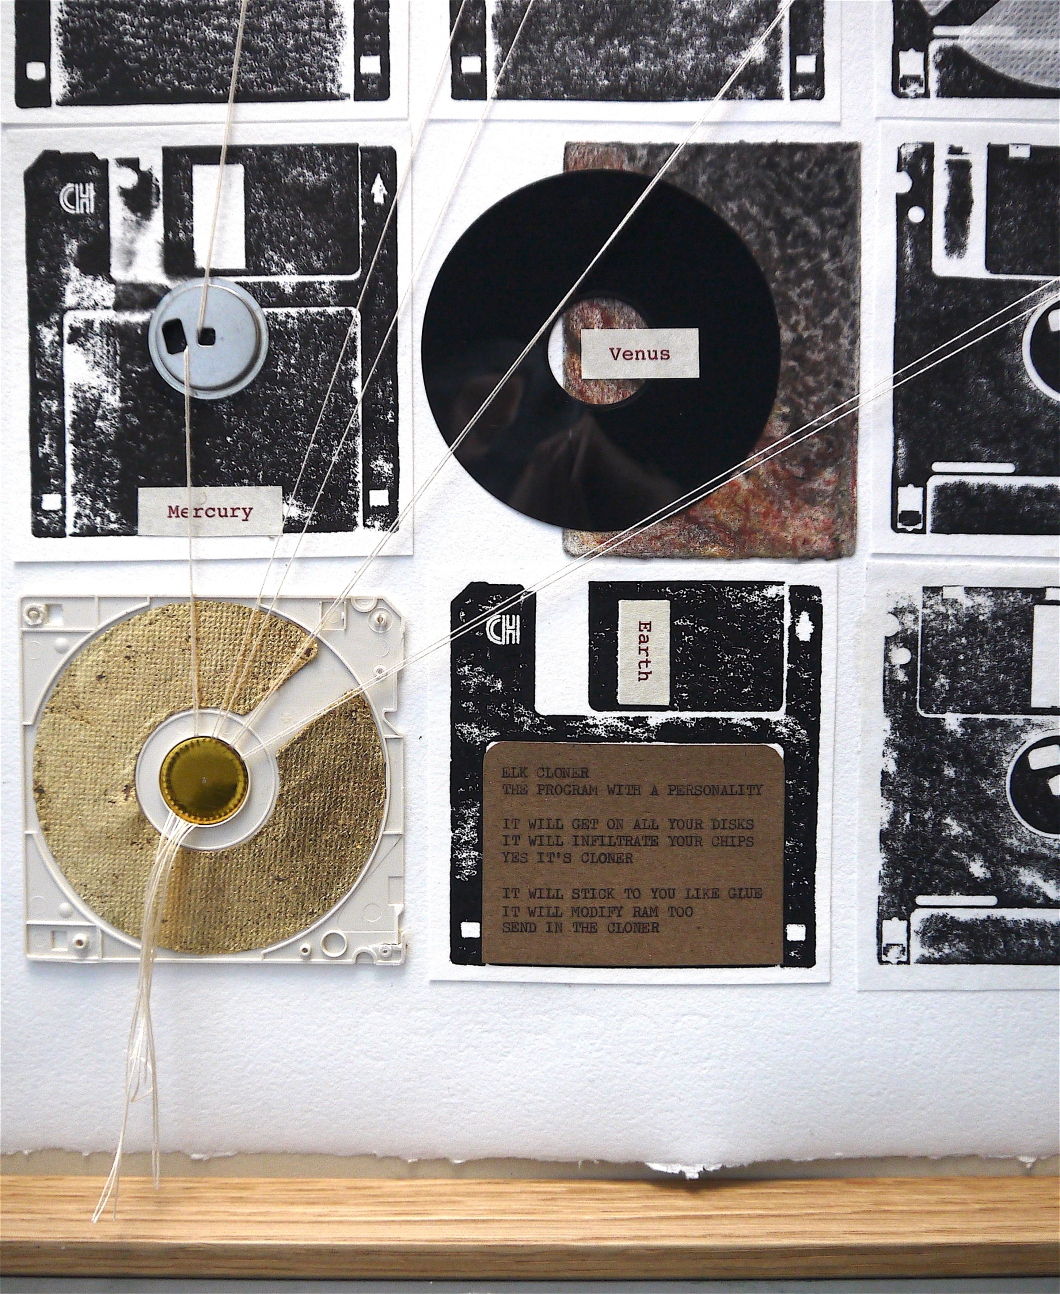 80_1982_Turning Tide_Helen Stone_paper and floppy disk montage 5